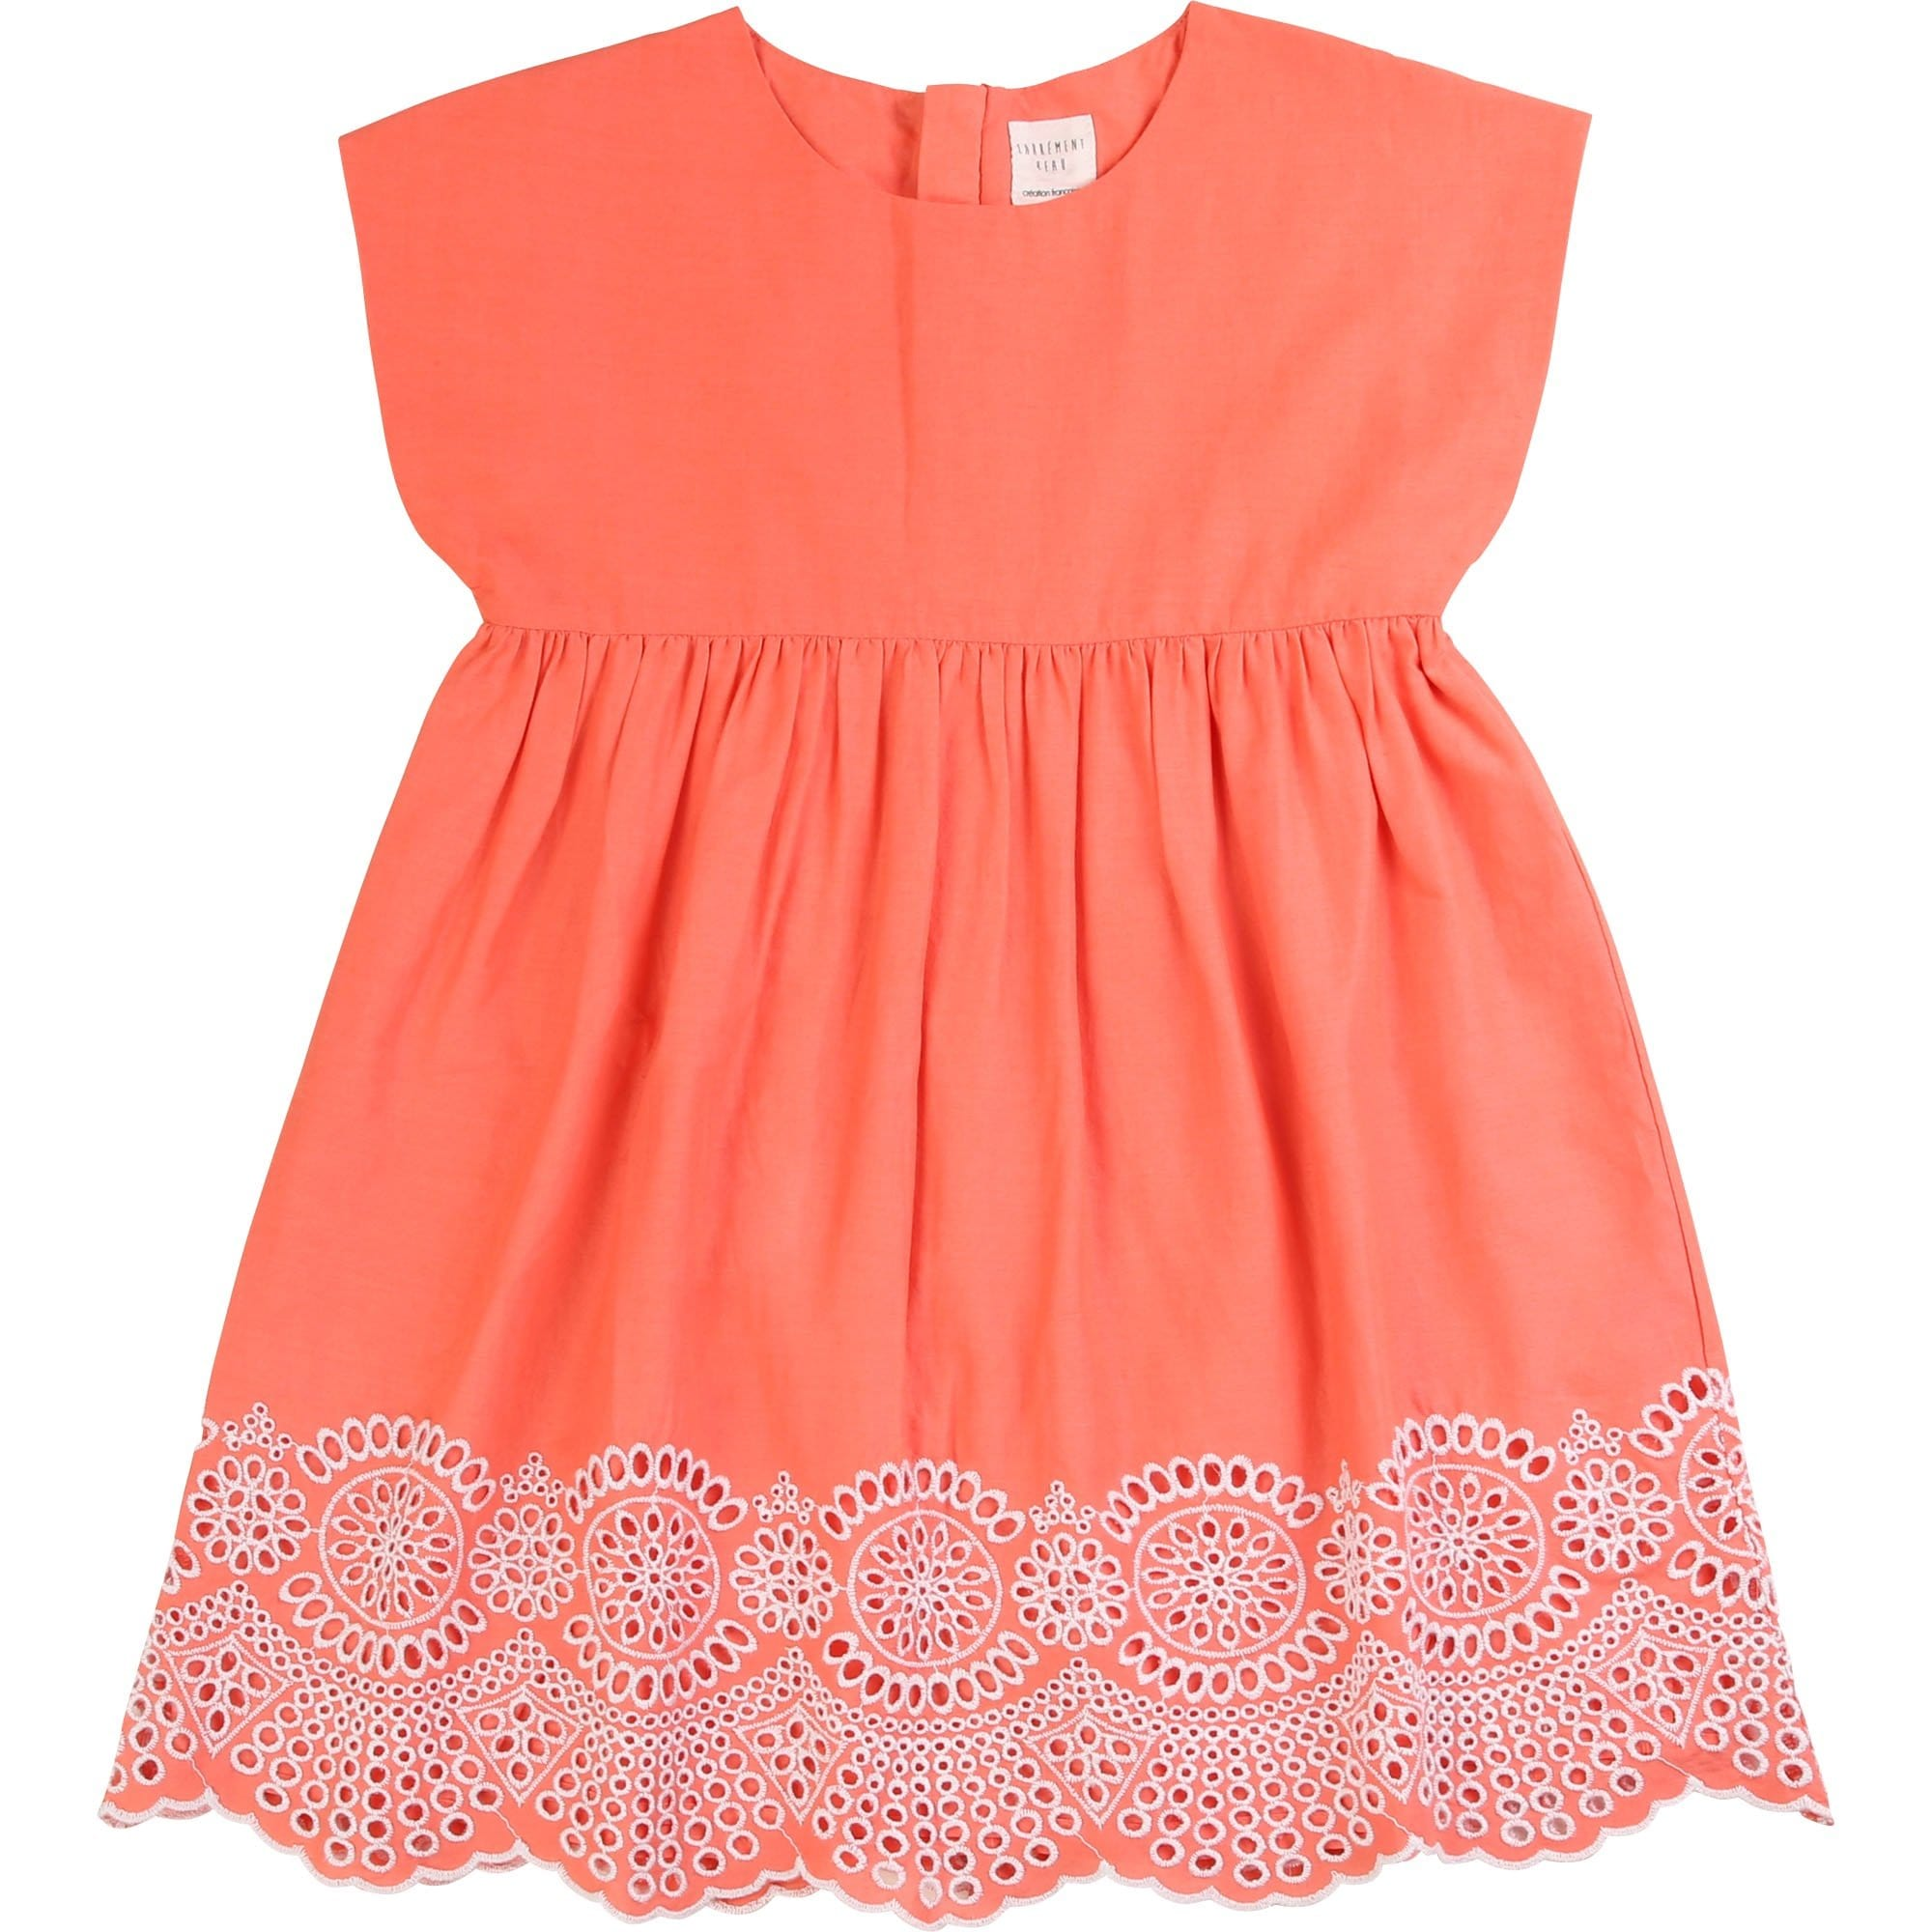 Carrement Beau Embroidered Dress Apricot Y12203/44P